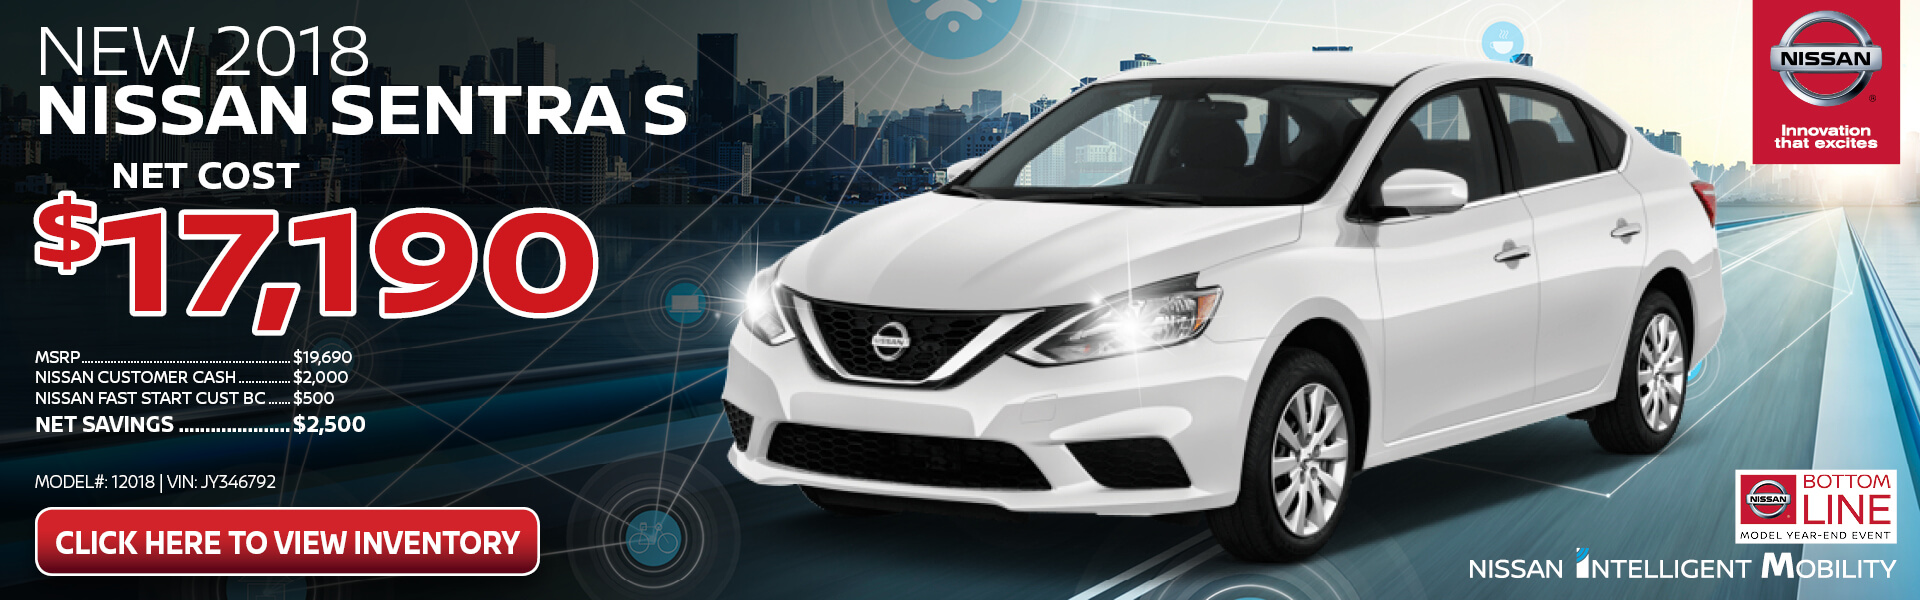 Nissan Sentra $17,190 Purchase